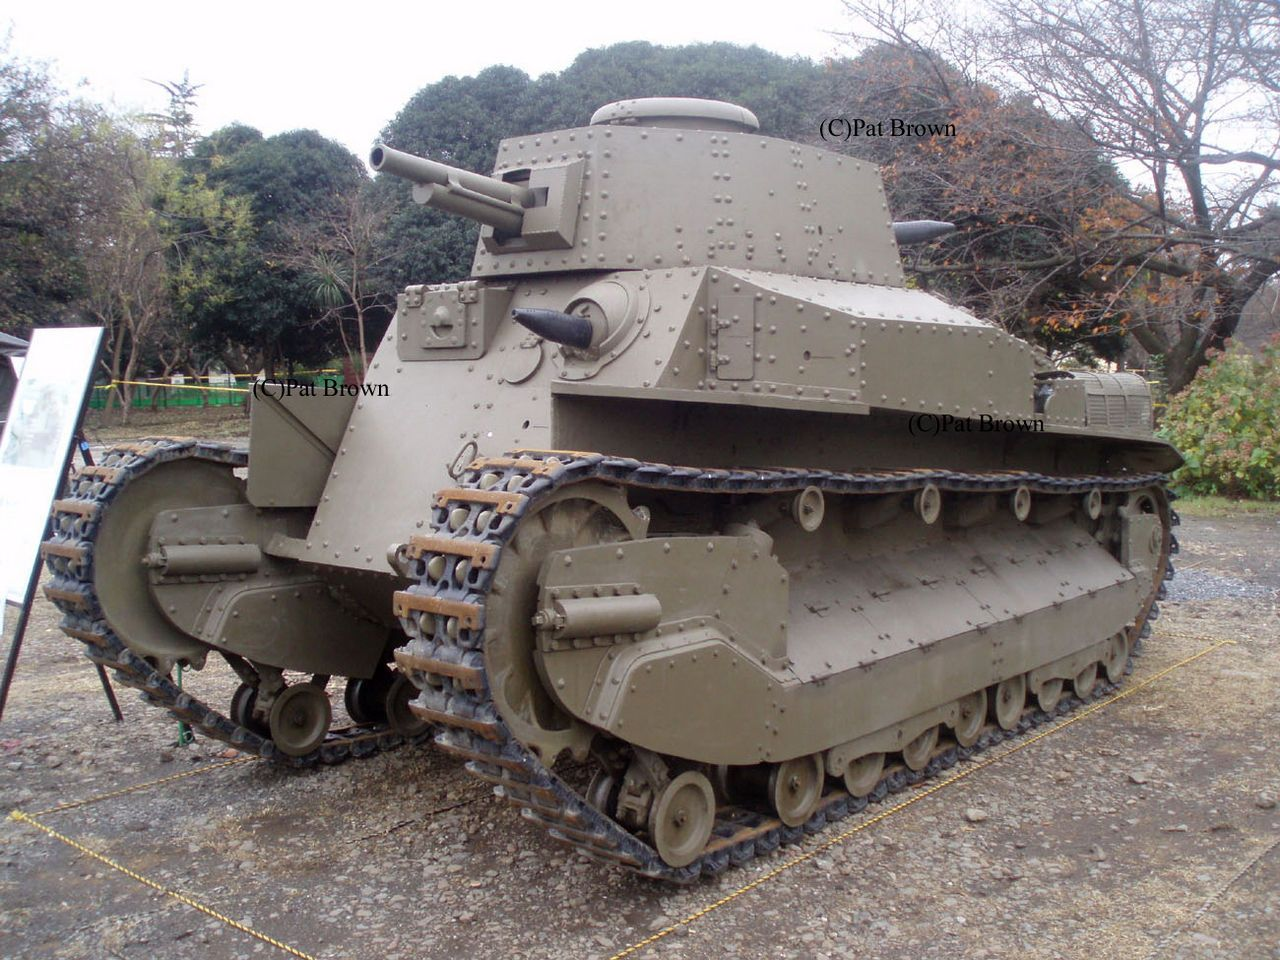 The Type 89 medium tank I-Go (八九式中戦車 イ号 Hachikyū-shiki chū-sensha I-gō?) was a medium tank used by the Imperial Japanese Army from 1932 to 1942 in combat operations of the Second Sino-Japanese War, at Khalkhin Gol against the Soviet Union, and in the Second World War. The Type 89B model was the world's first mass produced diesel engine tank...